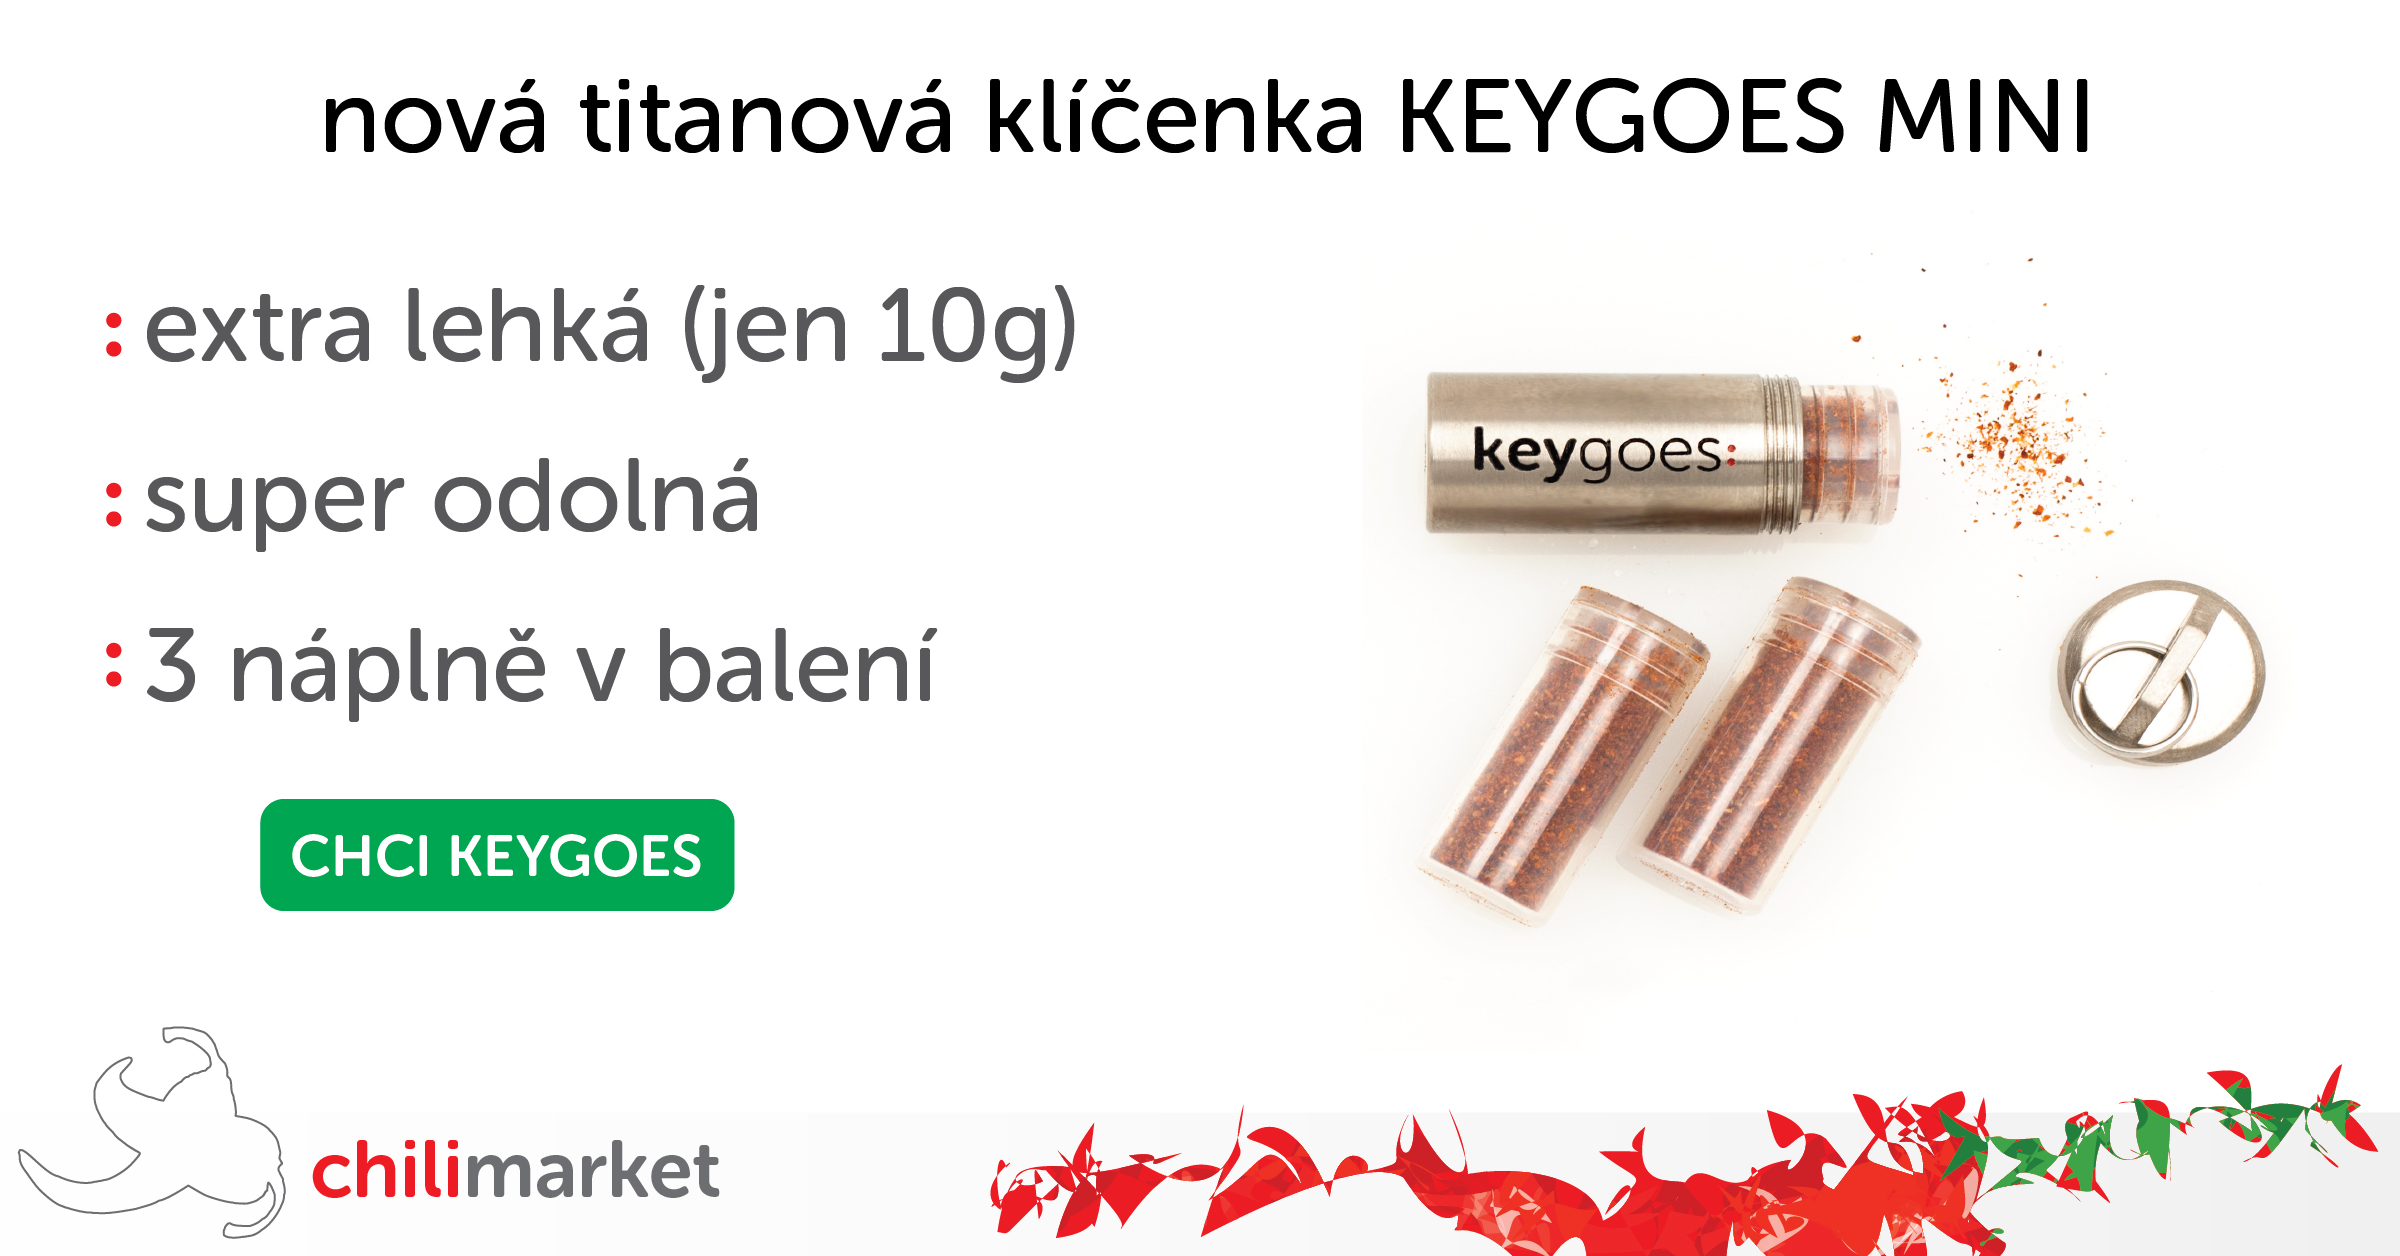 keygoes mini